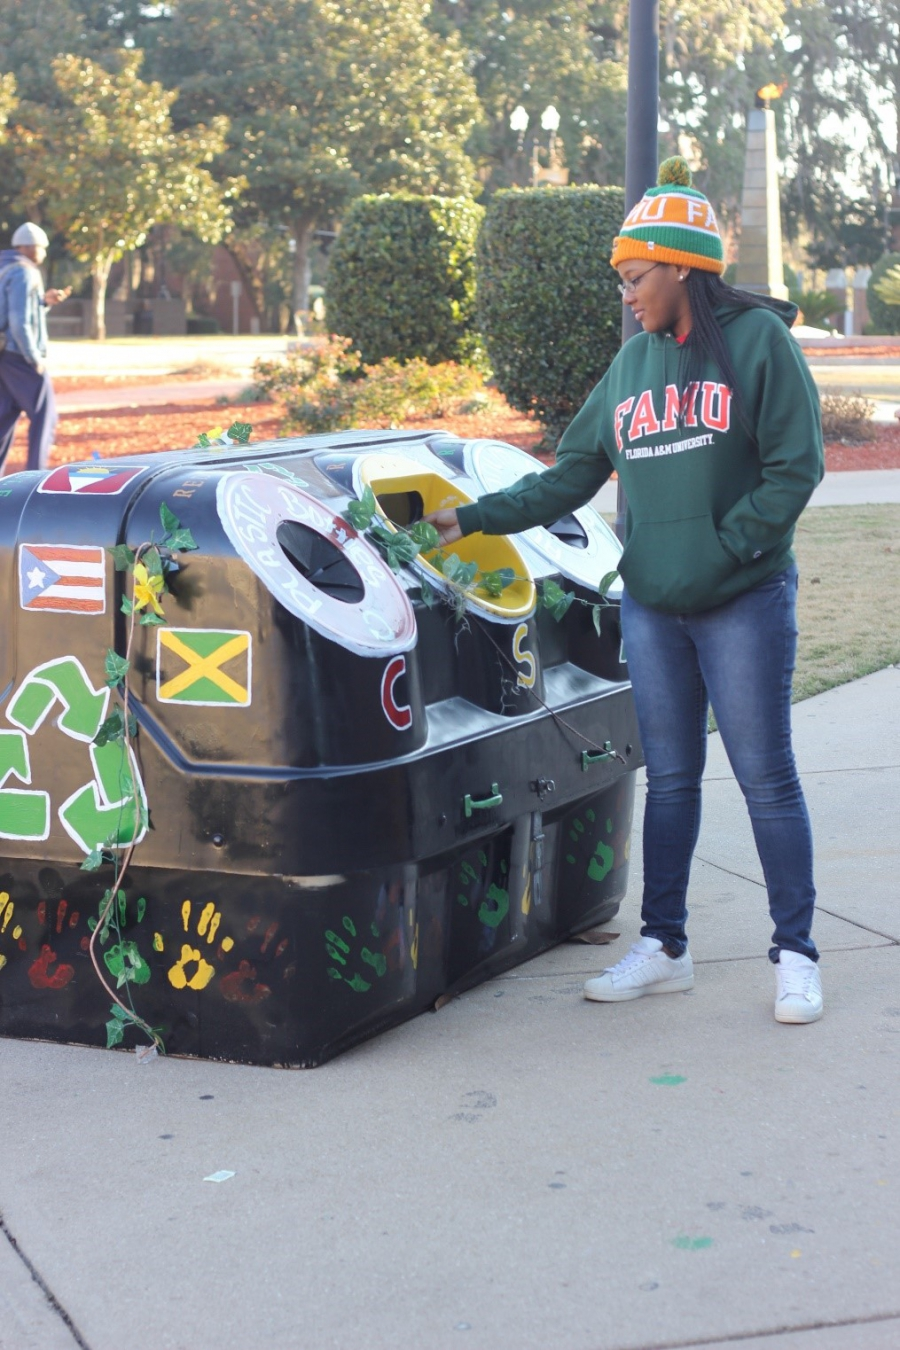 FAMU students are embracing recycling on campus and at game days.